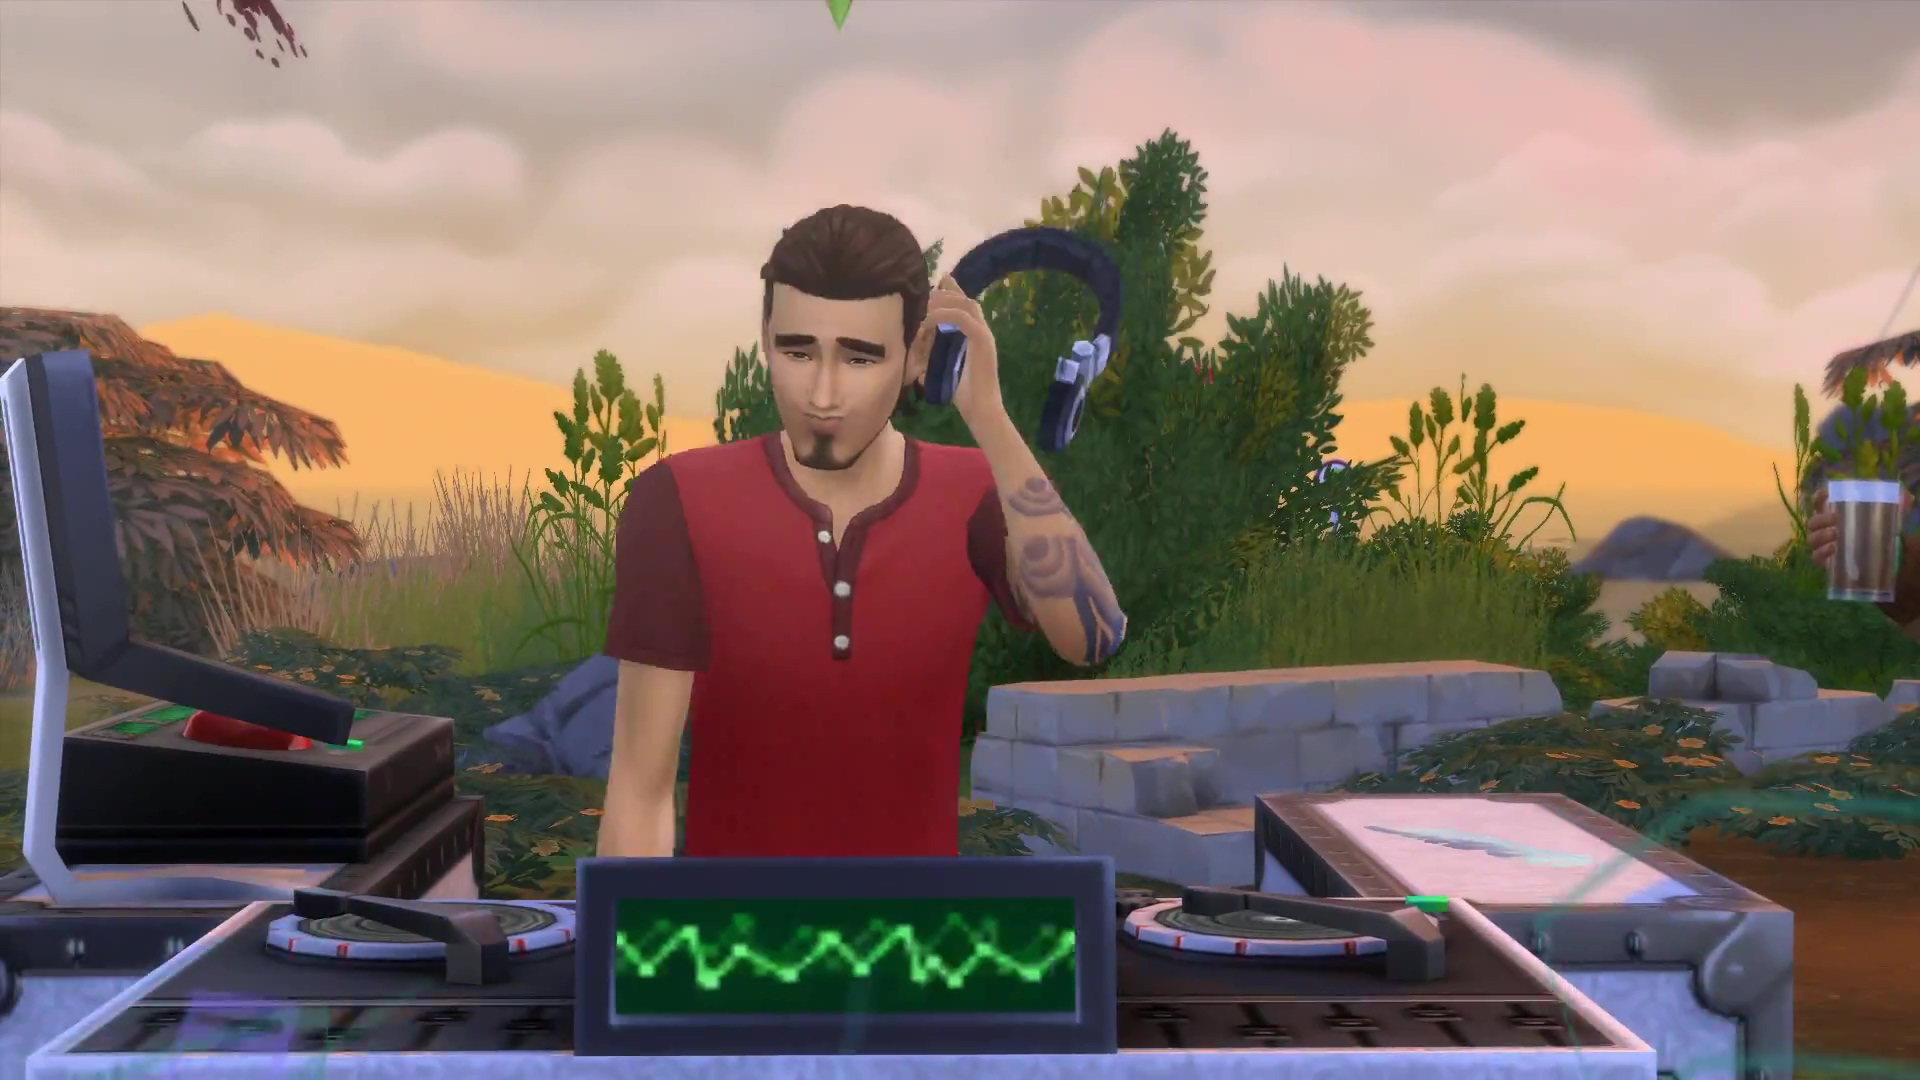 The Sims 4: Get Together: Dance Skill and DJ Booth Preview